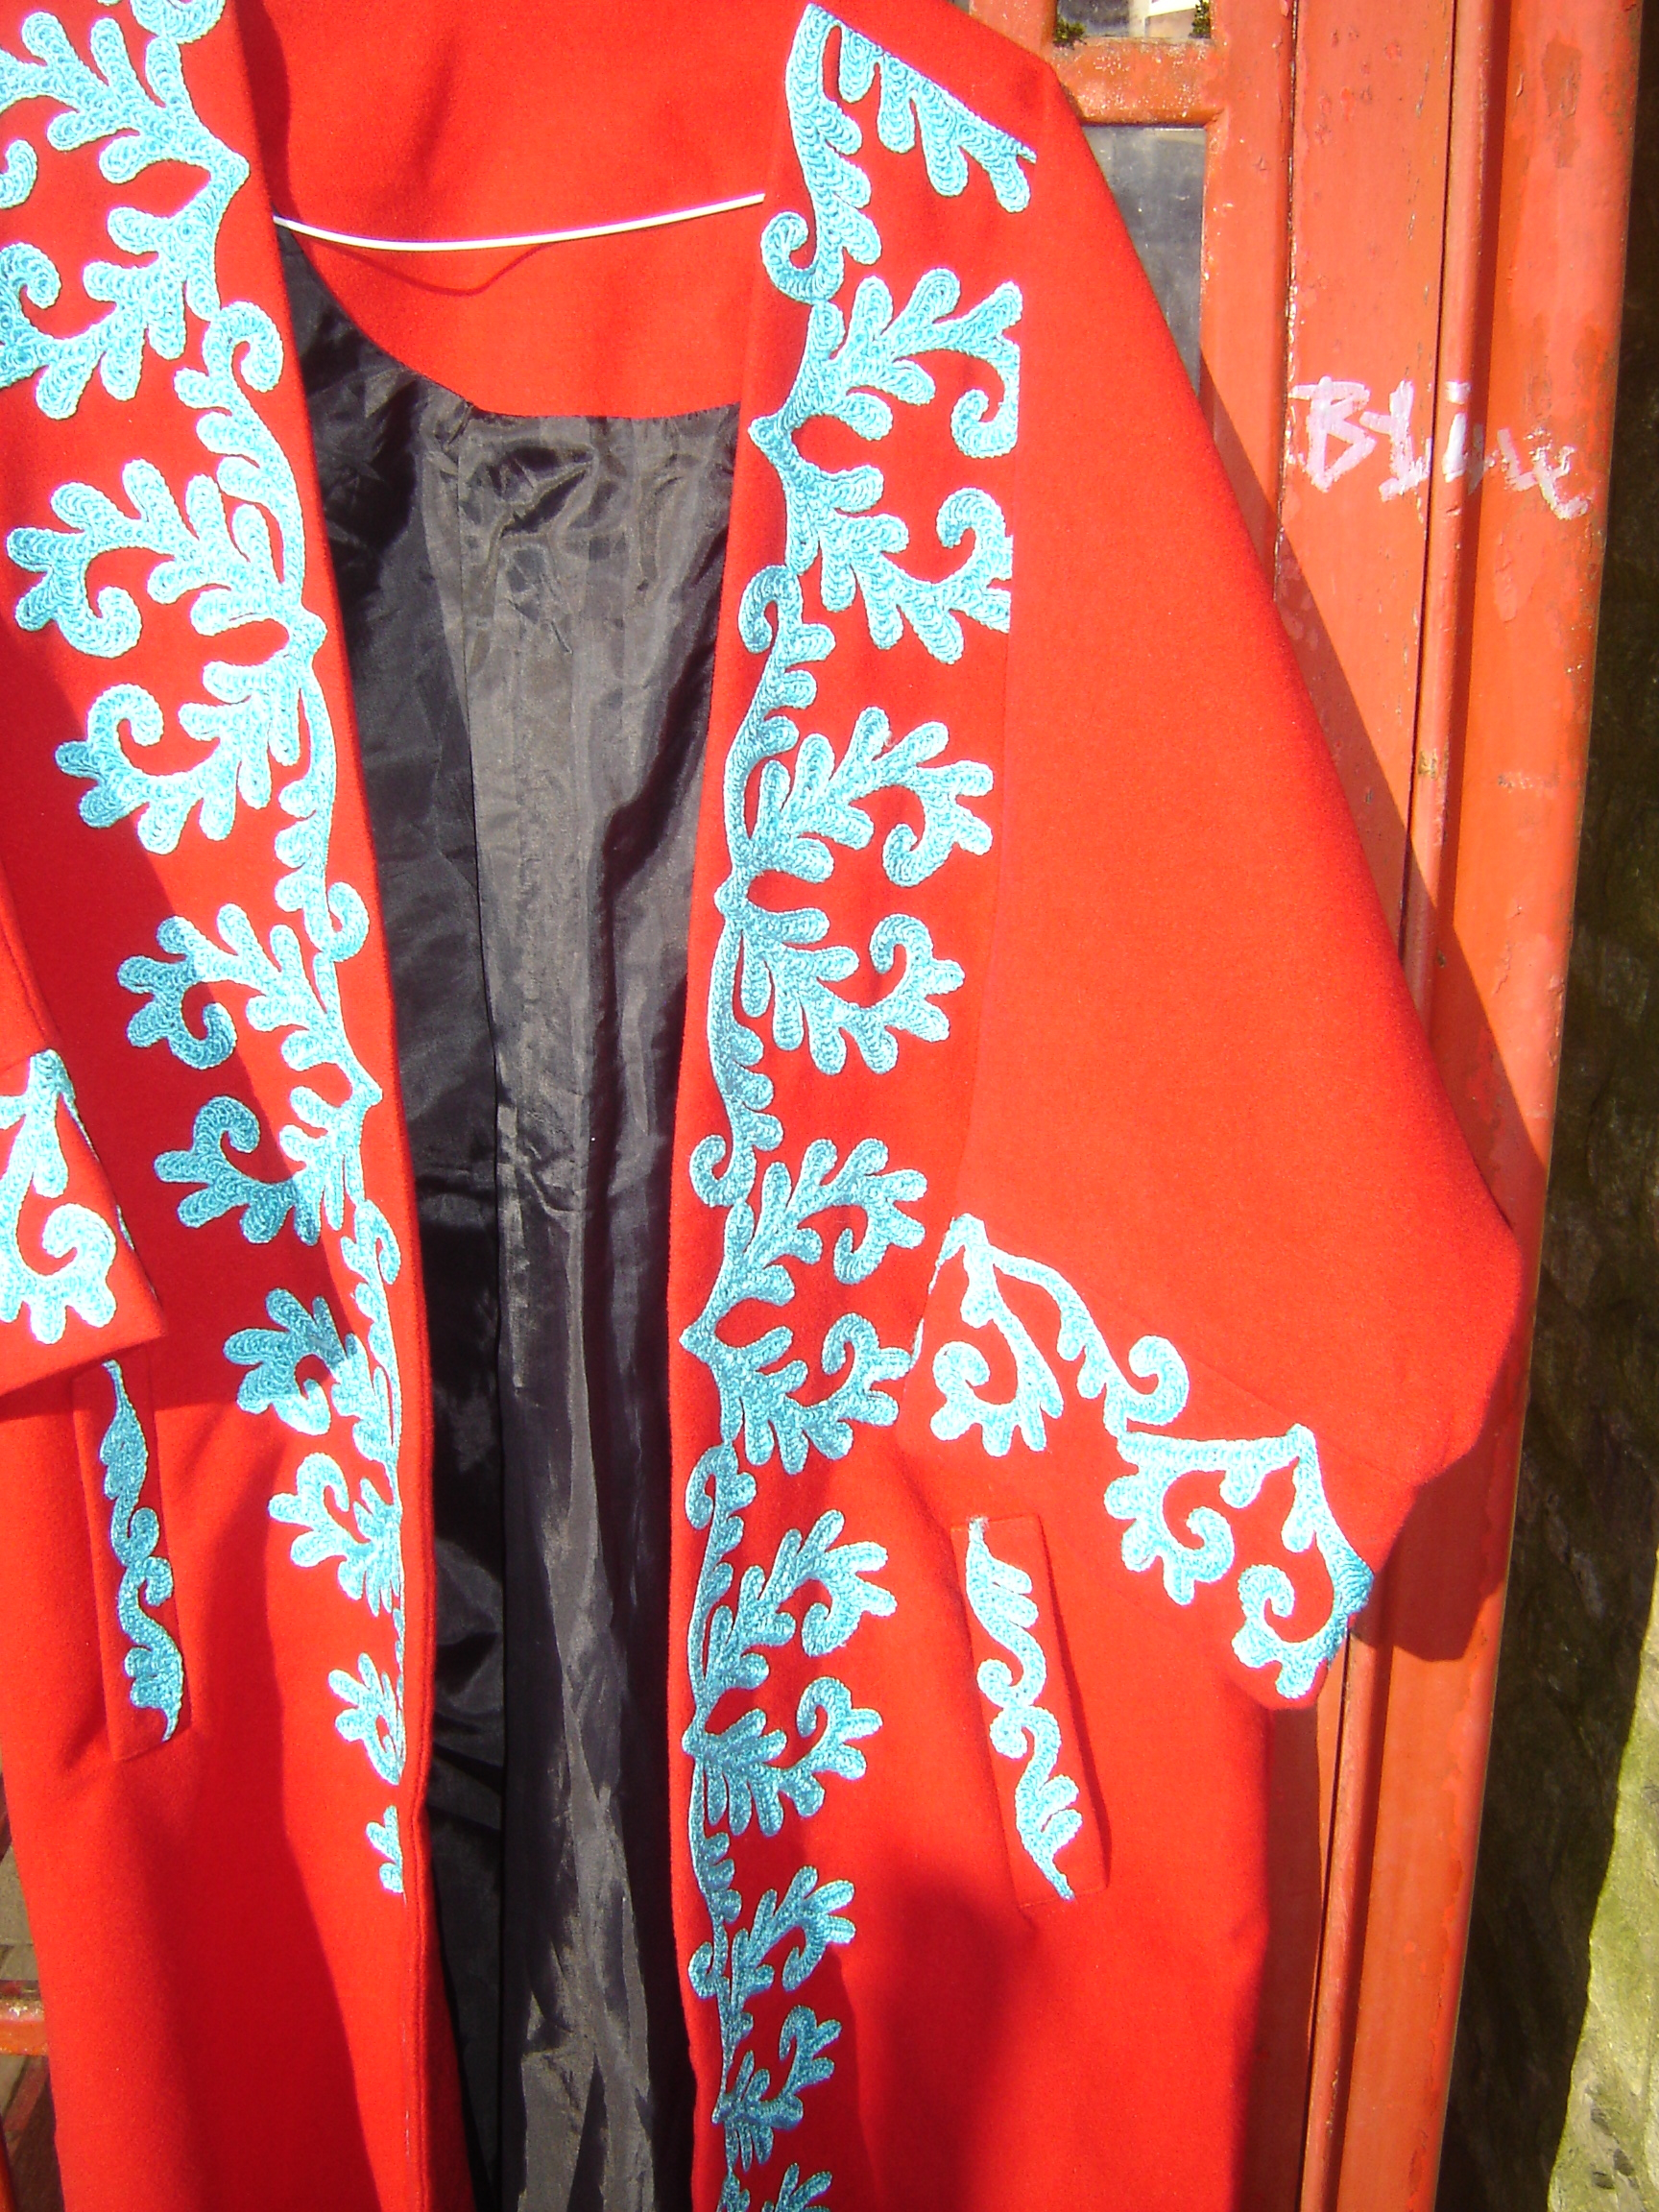 Splendid red full-length coat with turquoise embroidery